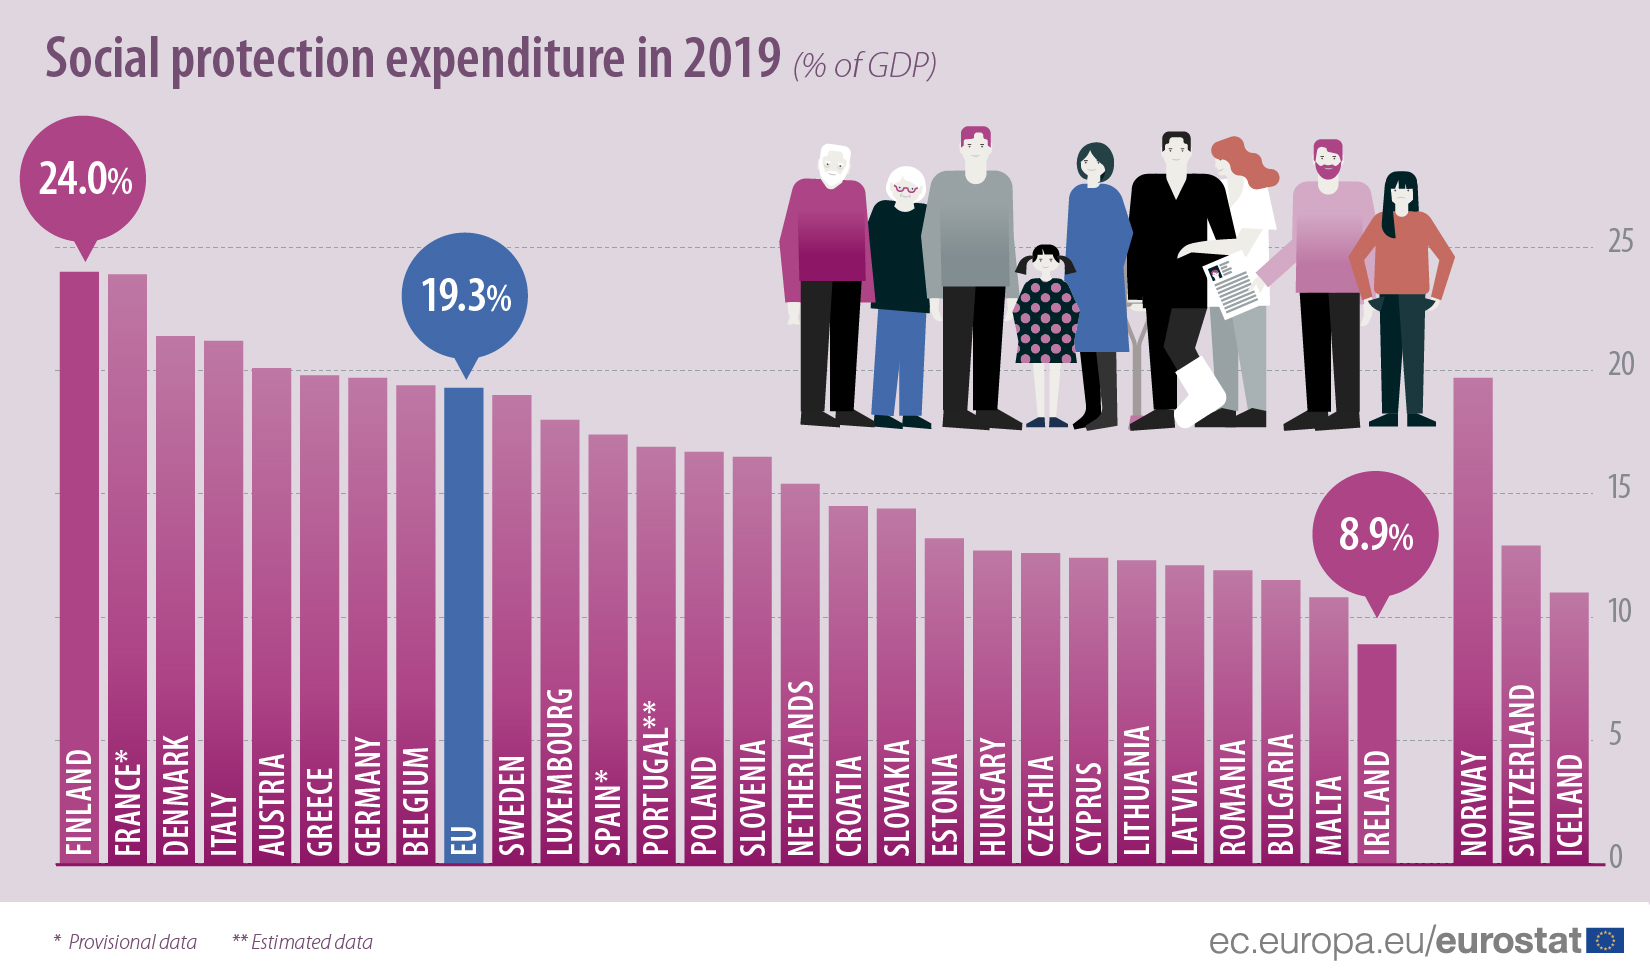 Social protection expenditure in 2019